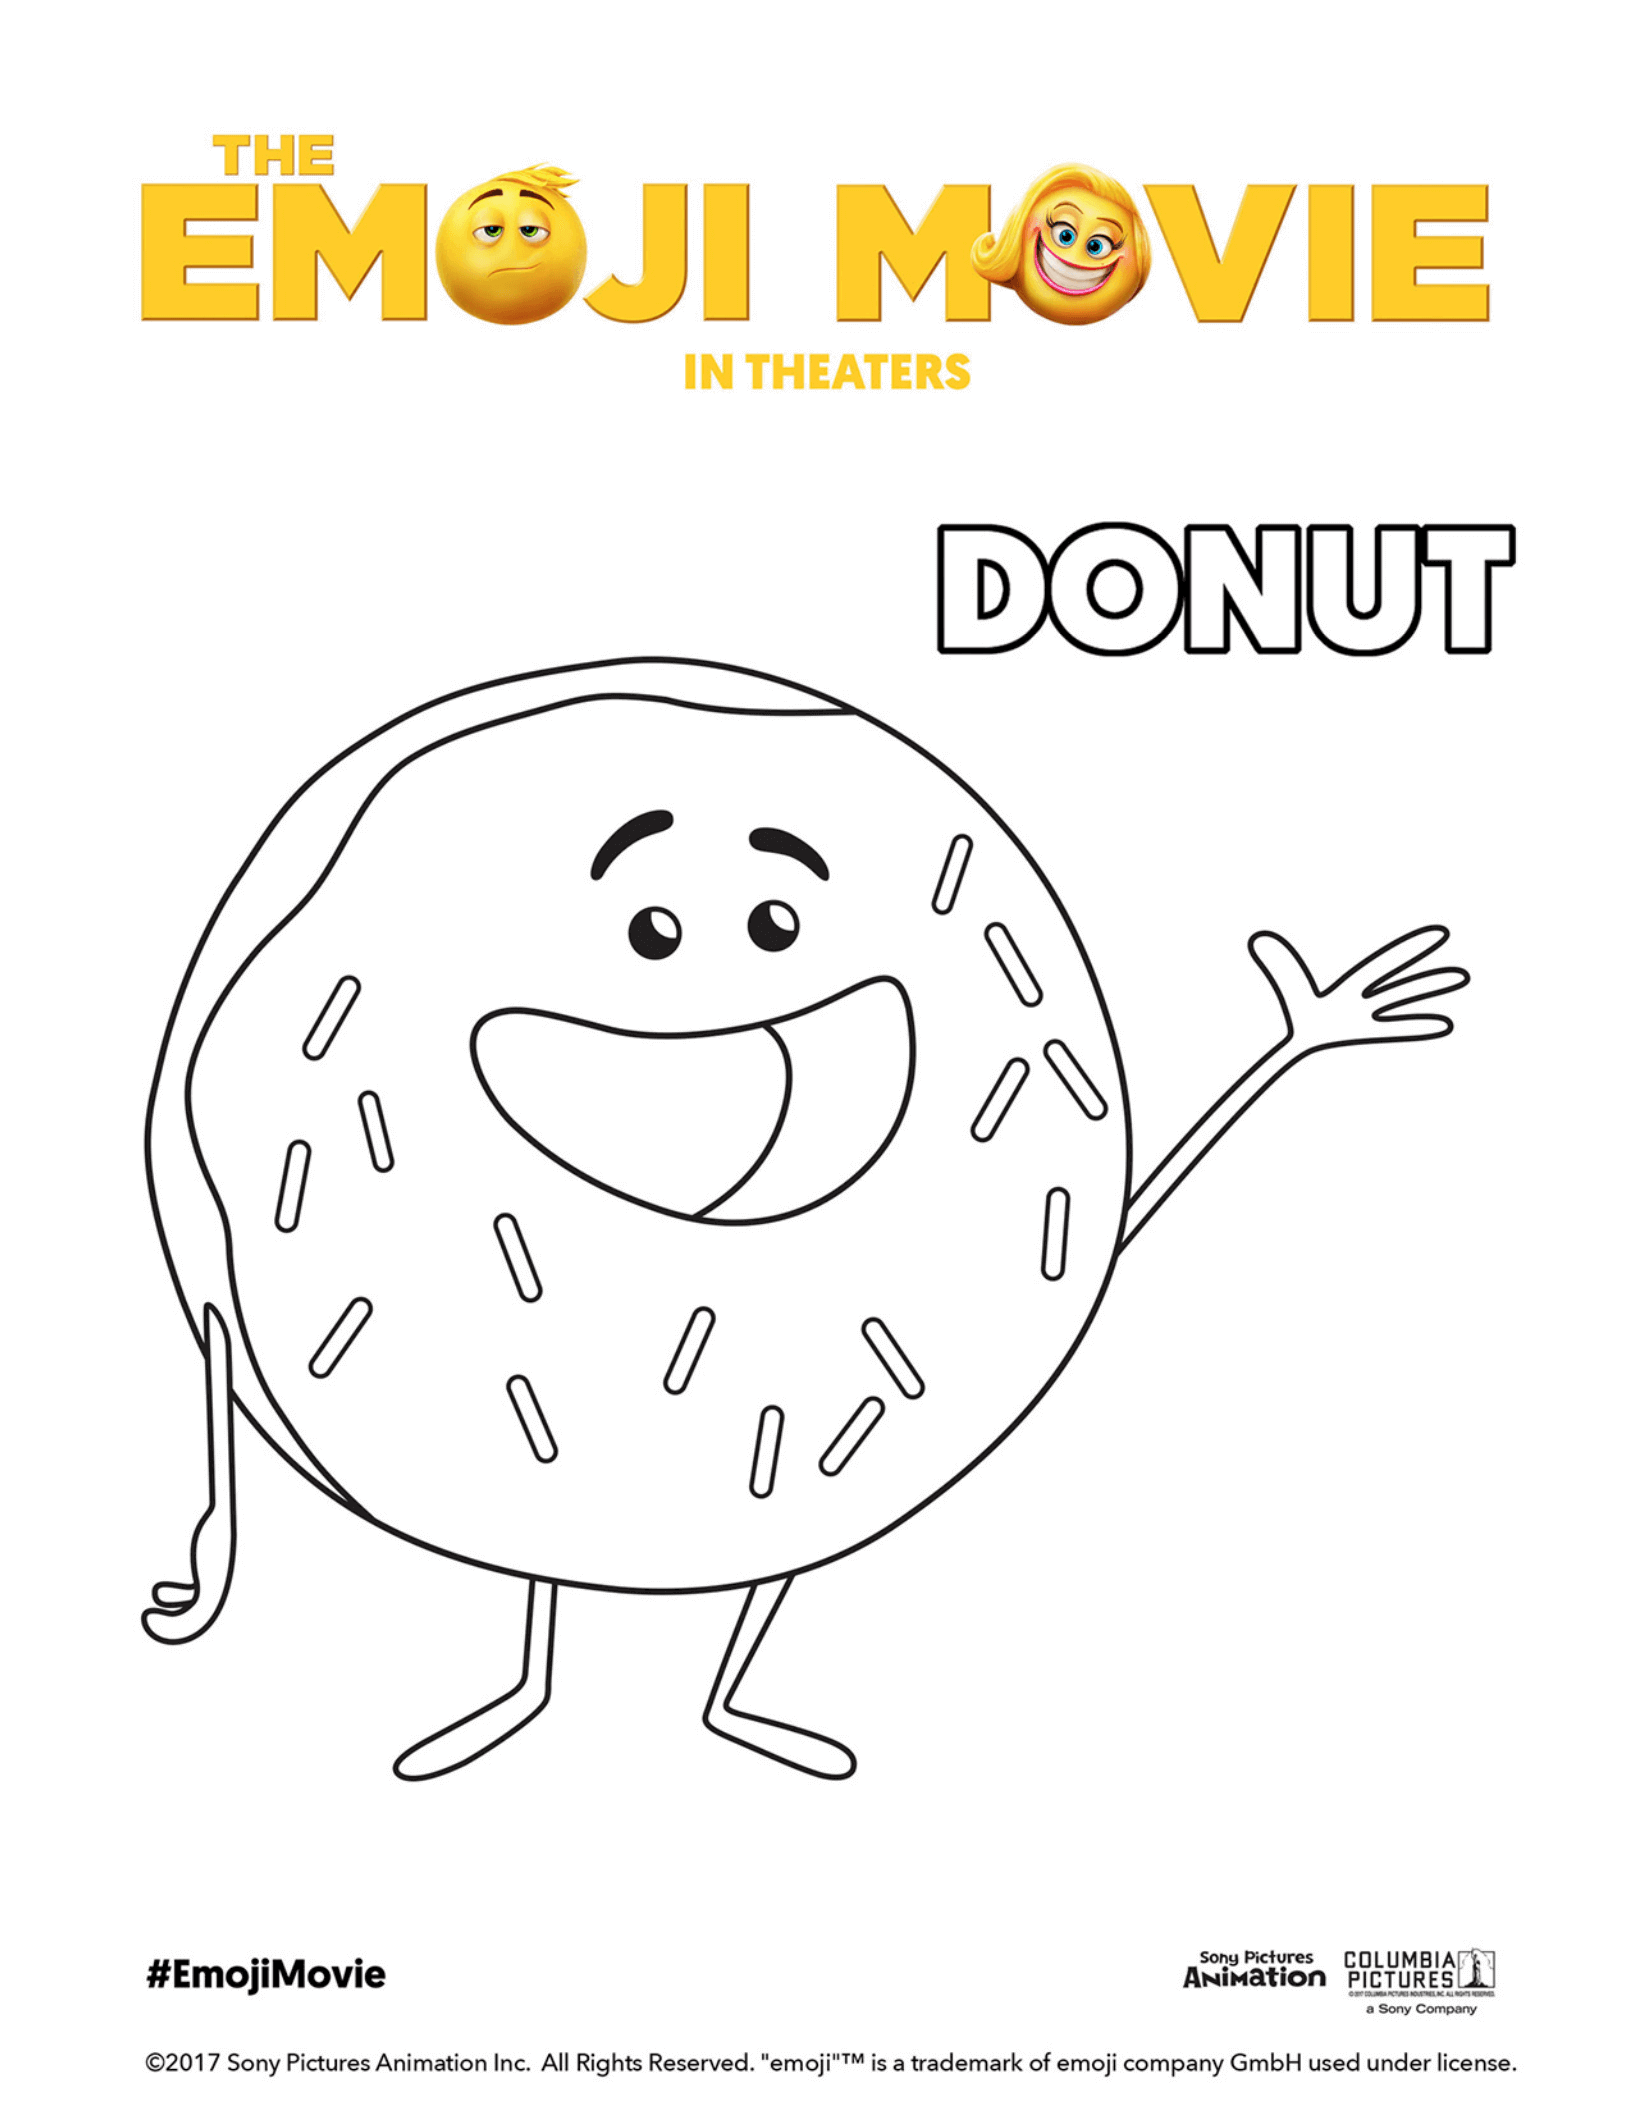 Printable coloring pages emoji - The Emoji Movie Donut Coloring Page